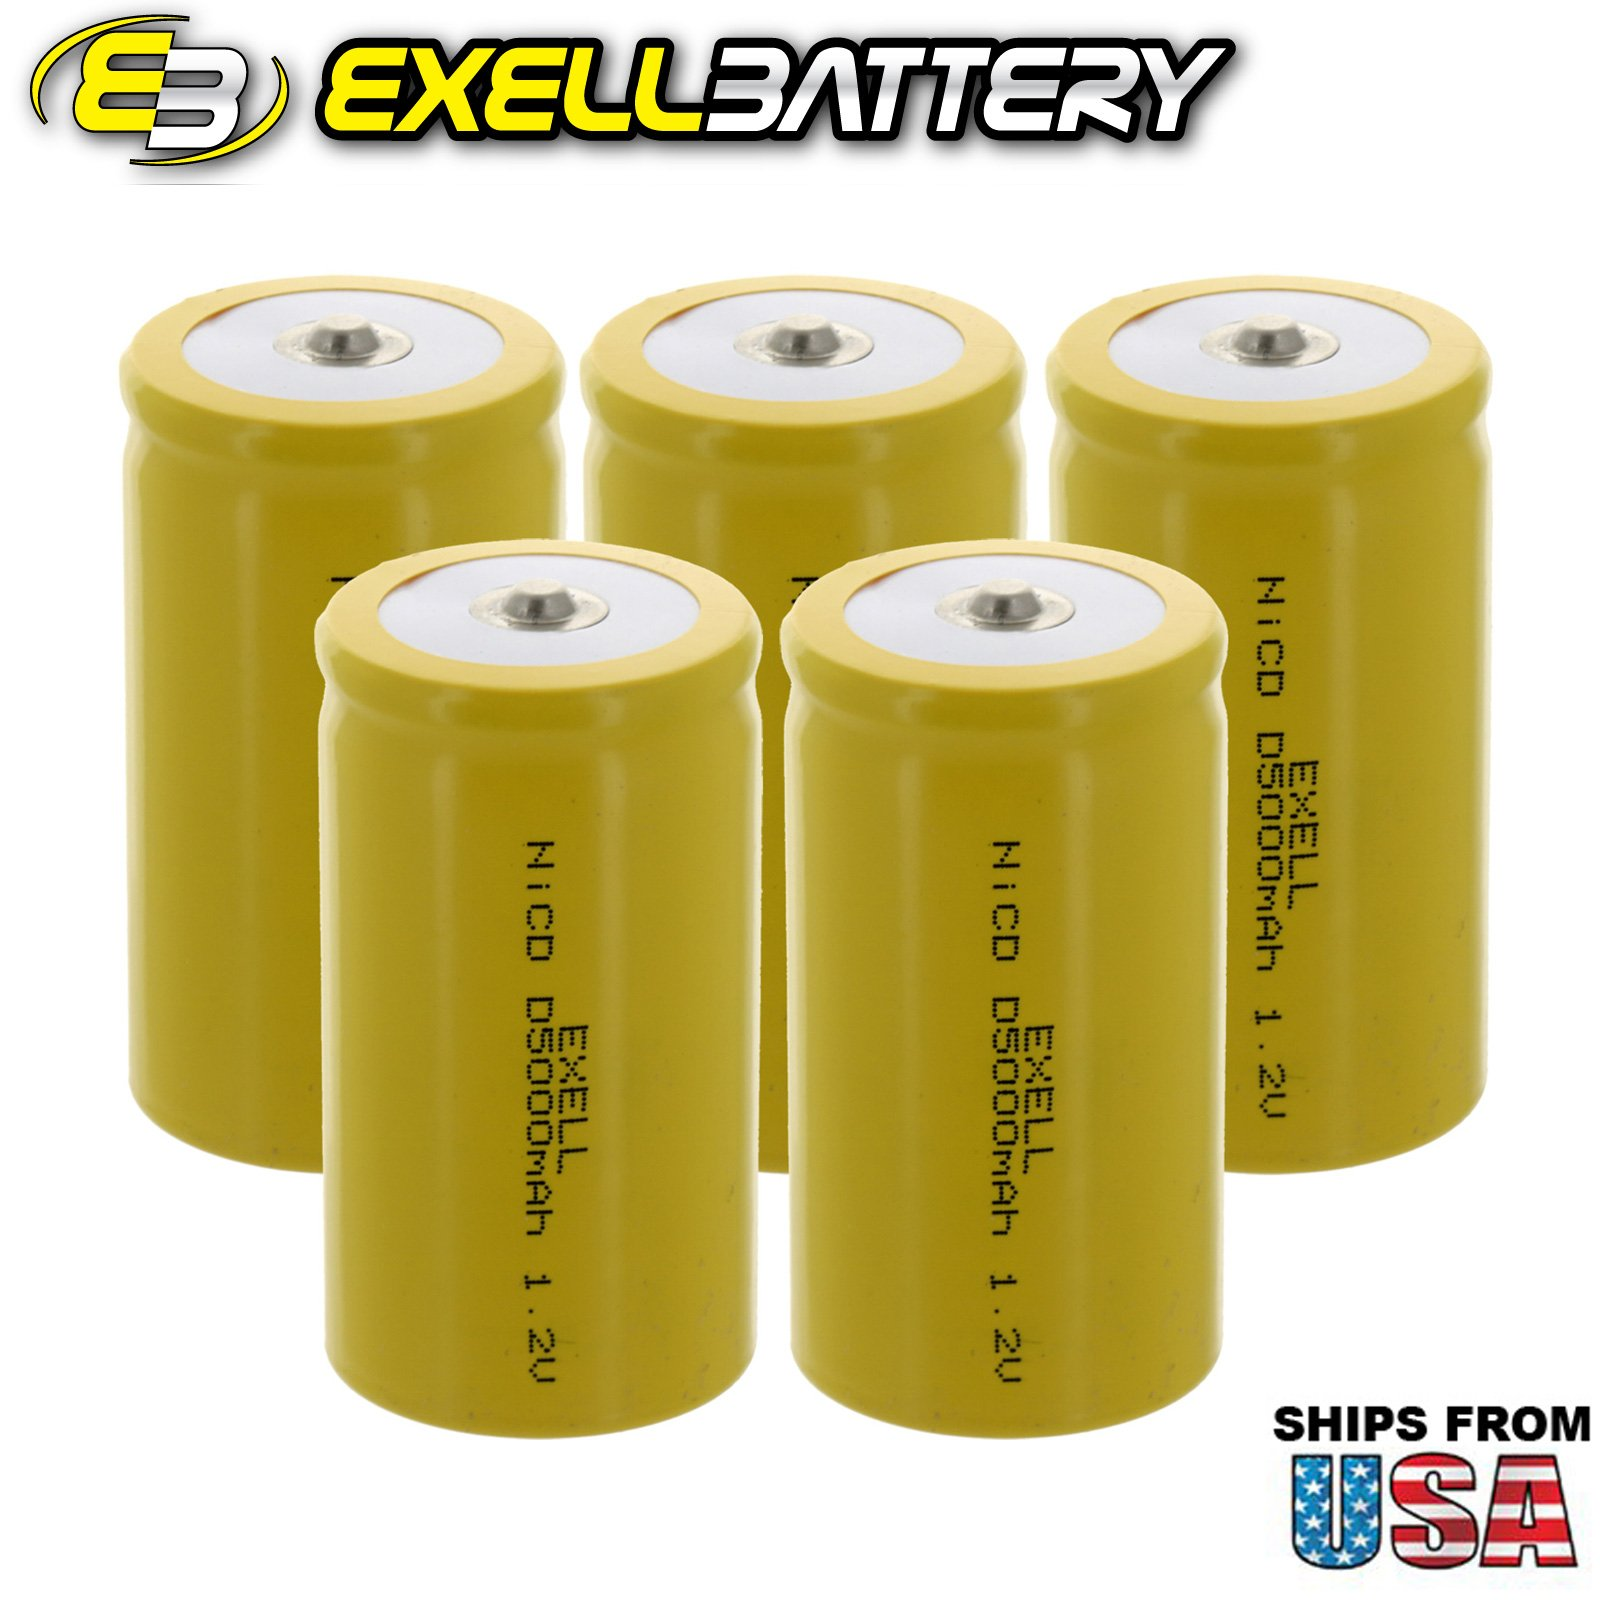 5x Exell D Size 1.2V 5000mAh NiCD Button Top Rechargeable Batteries for medical instruments/equipment, electric razors, toothbrushes, radio controlled devices, electric tools